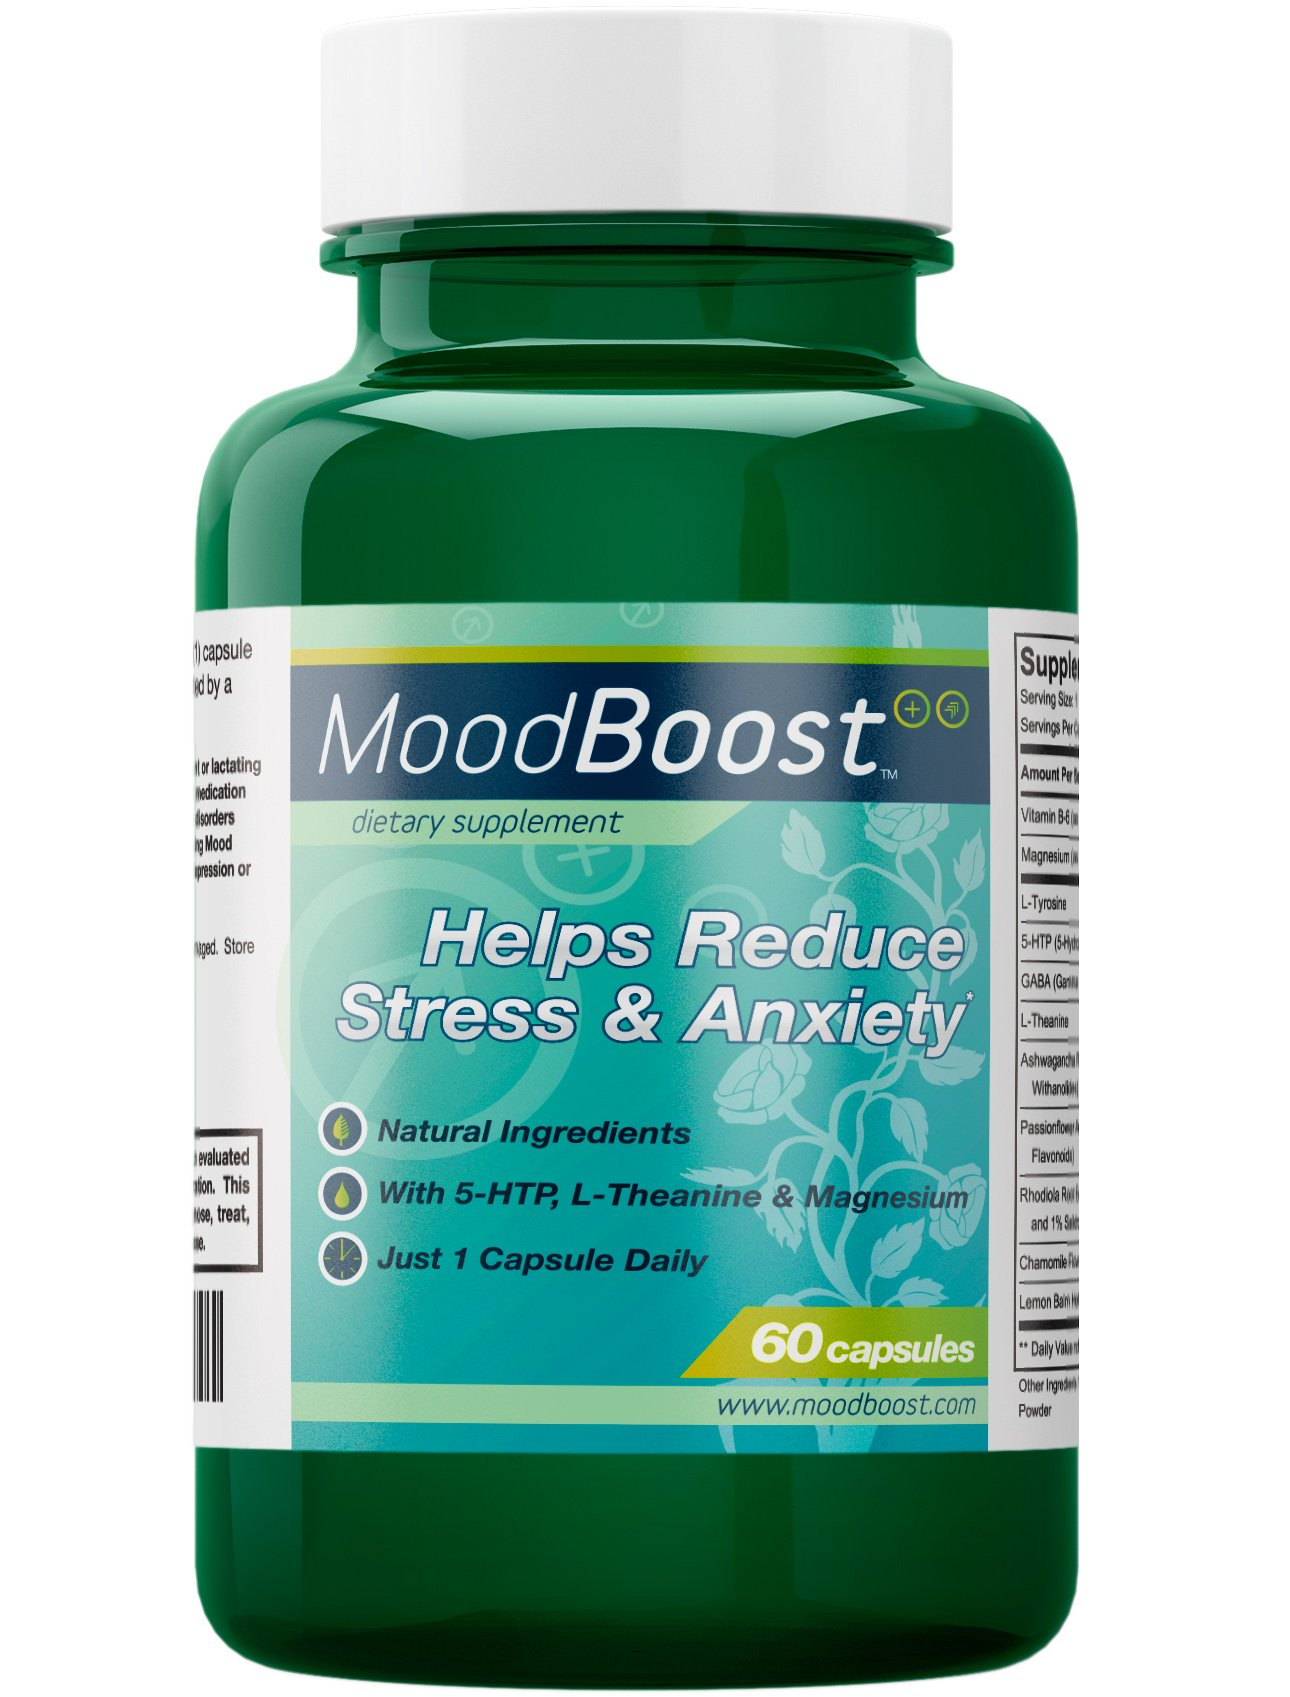 Cheap herbal supplement - Mood Boost Natural Supplement For Stress And Anxiety Relief With 5 Htp